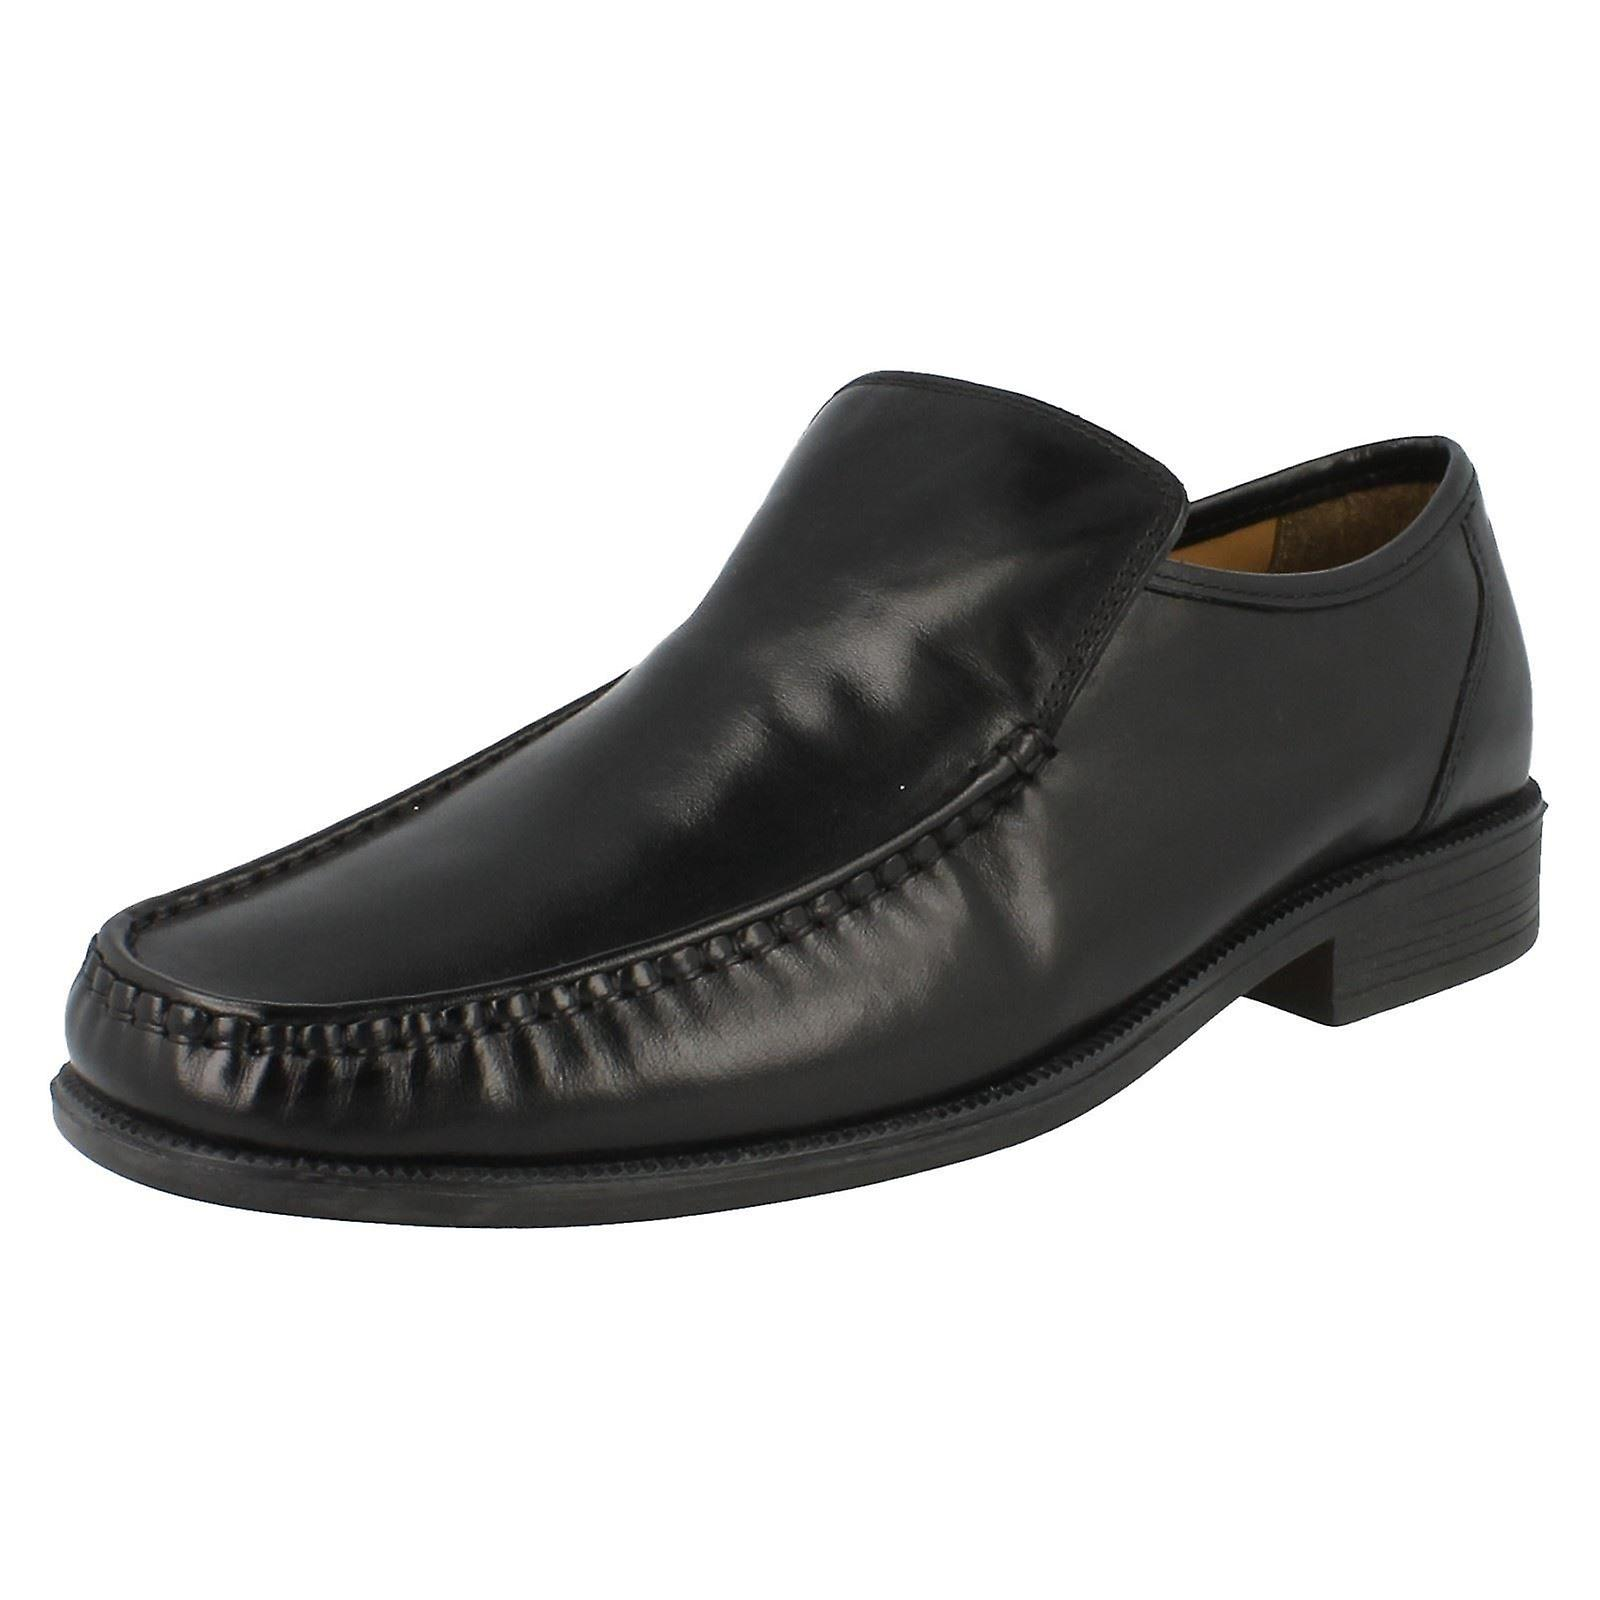 Mens Clarks Formal Slip On Leather Shoes Aston Top